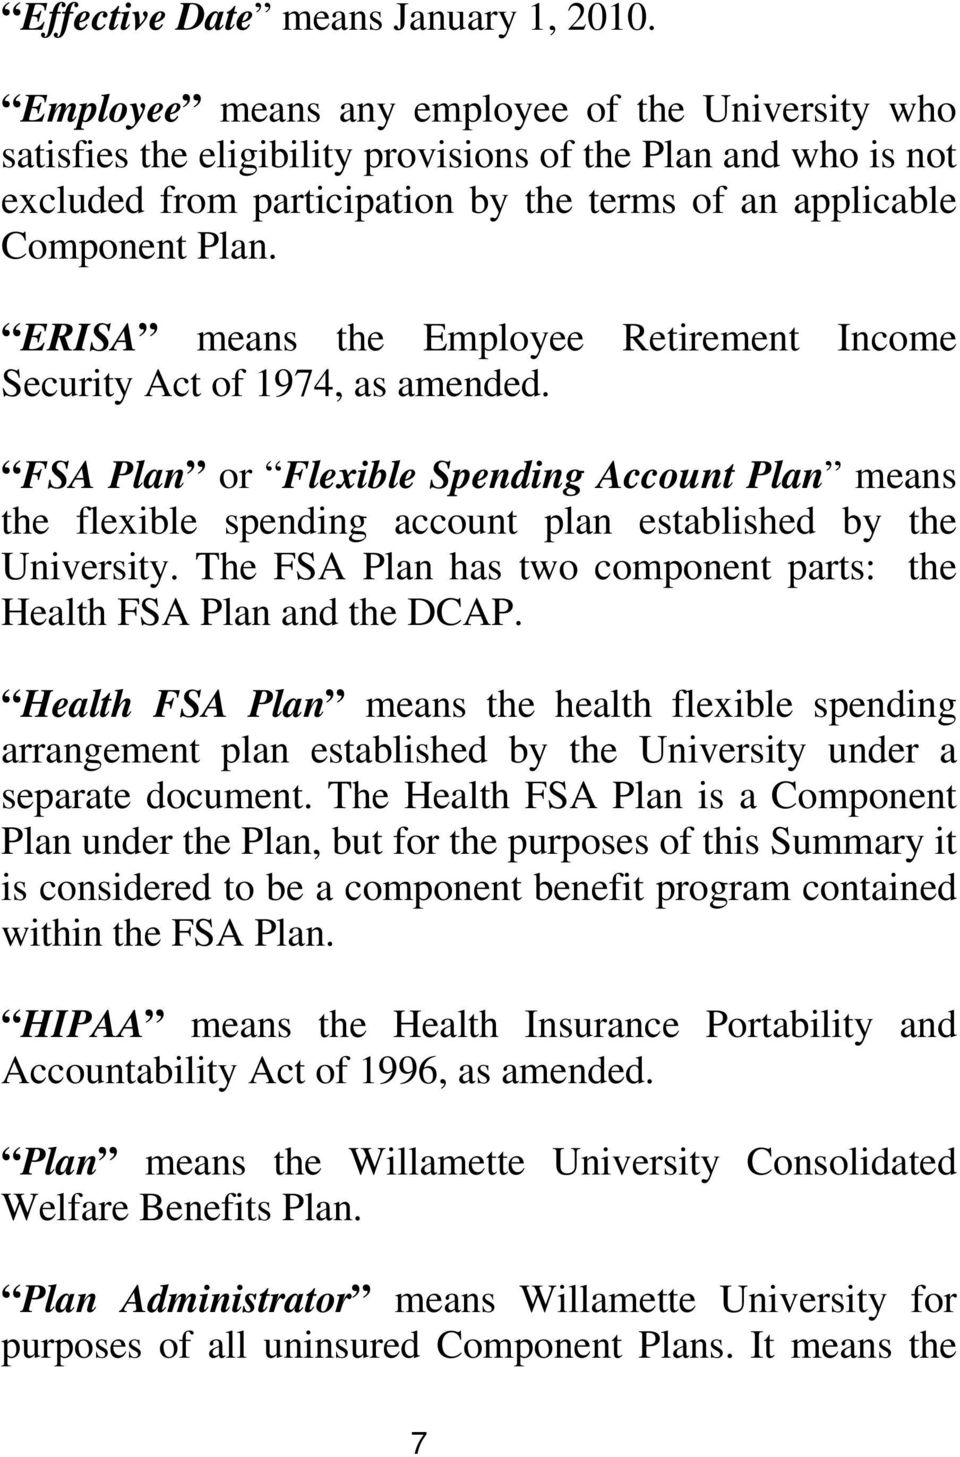 ERISA means the Employee Retirement Income Security Act of 1974, as amended. FSA Plan or Flexible Spending Account Plan means the flexible spending account plan established by the University.